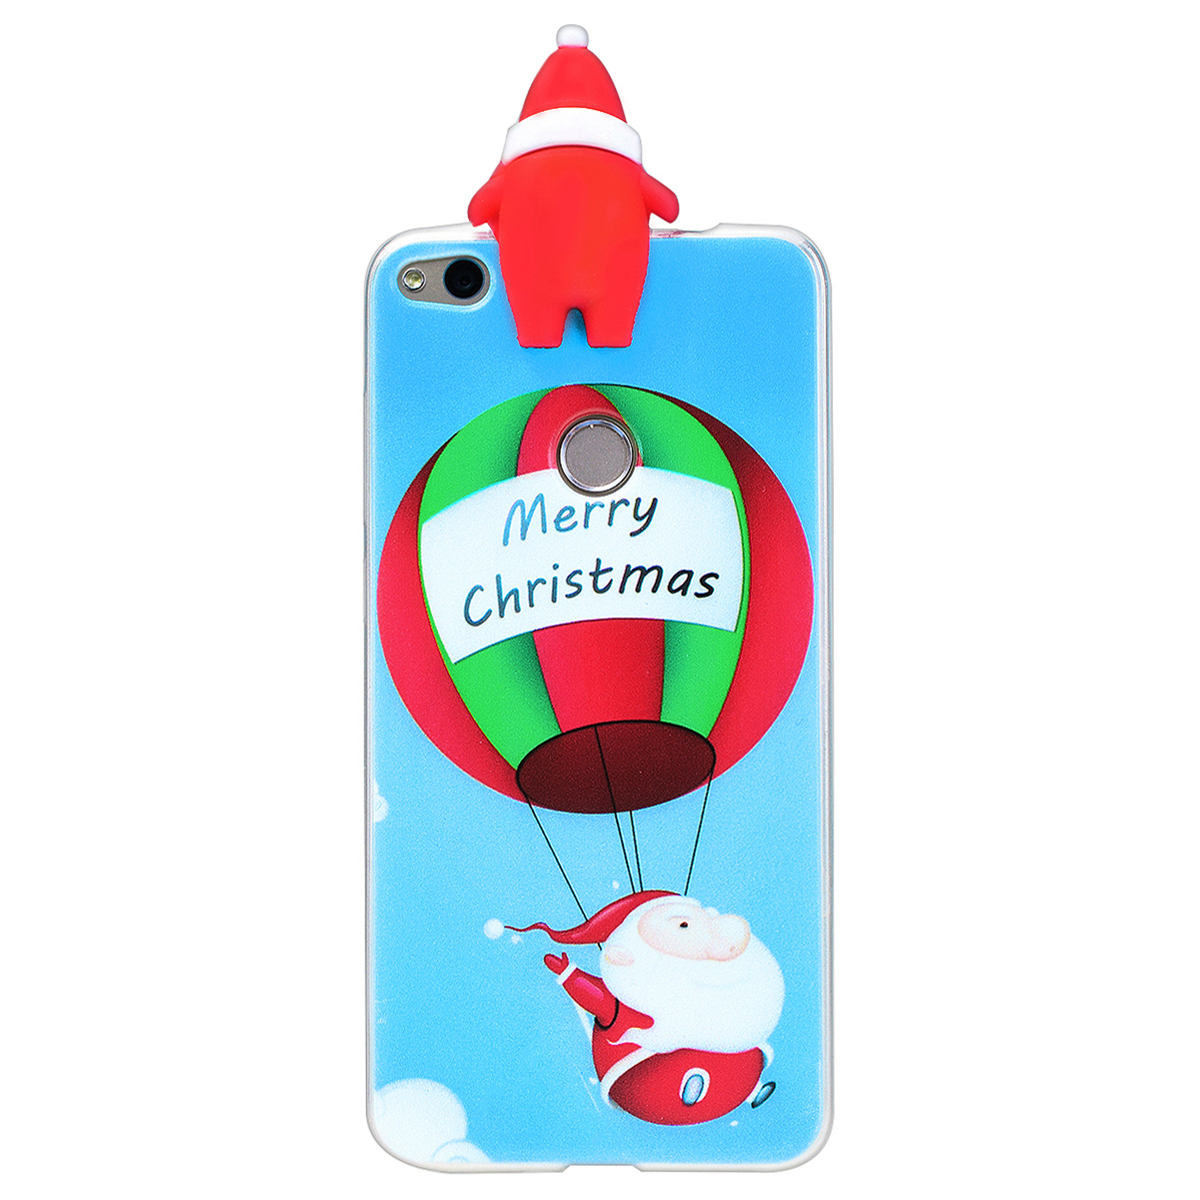 3D Happy New Years Case For Huawei P8 Lite Soft Case Silicone For Merry Christmas For Huawei P8 Lite 2017